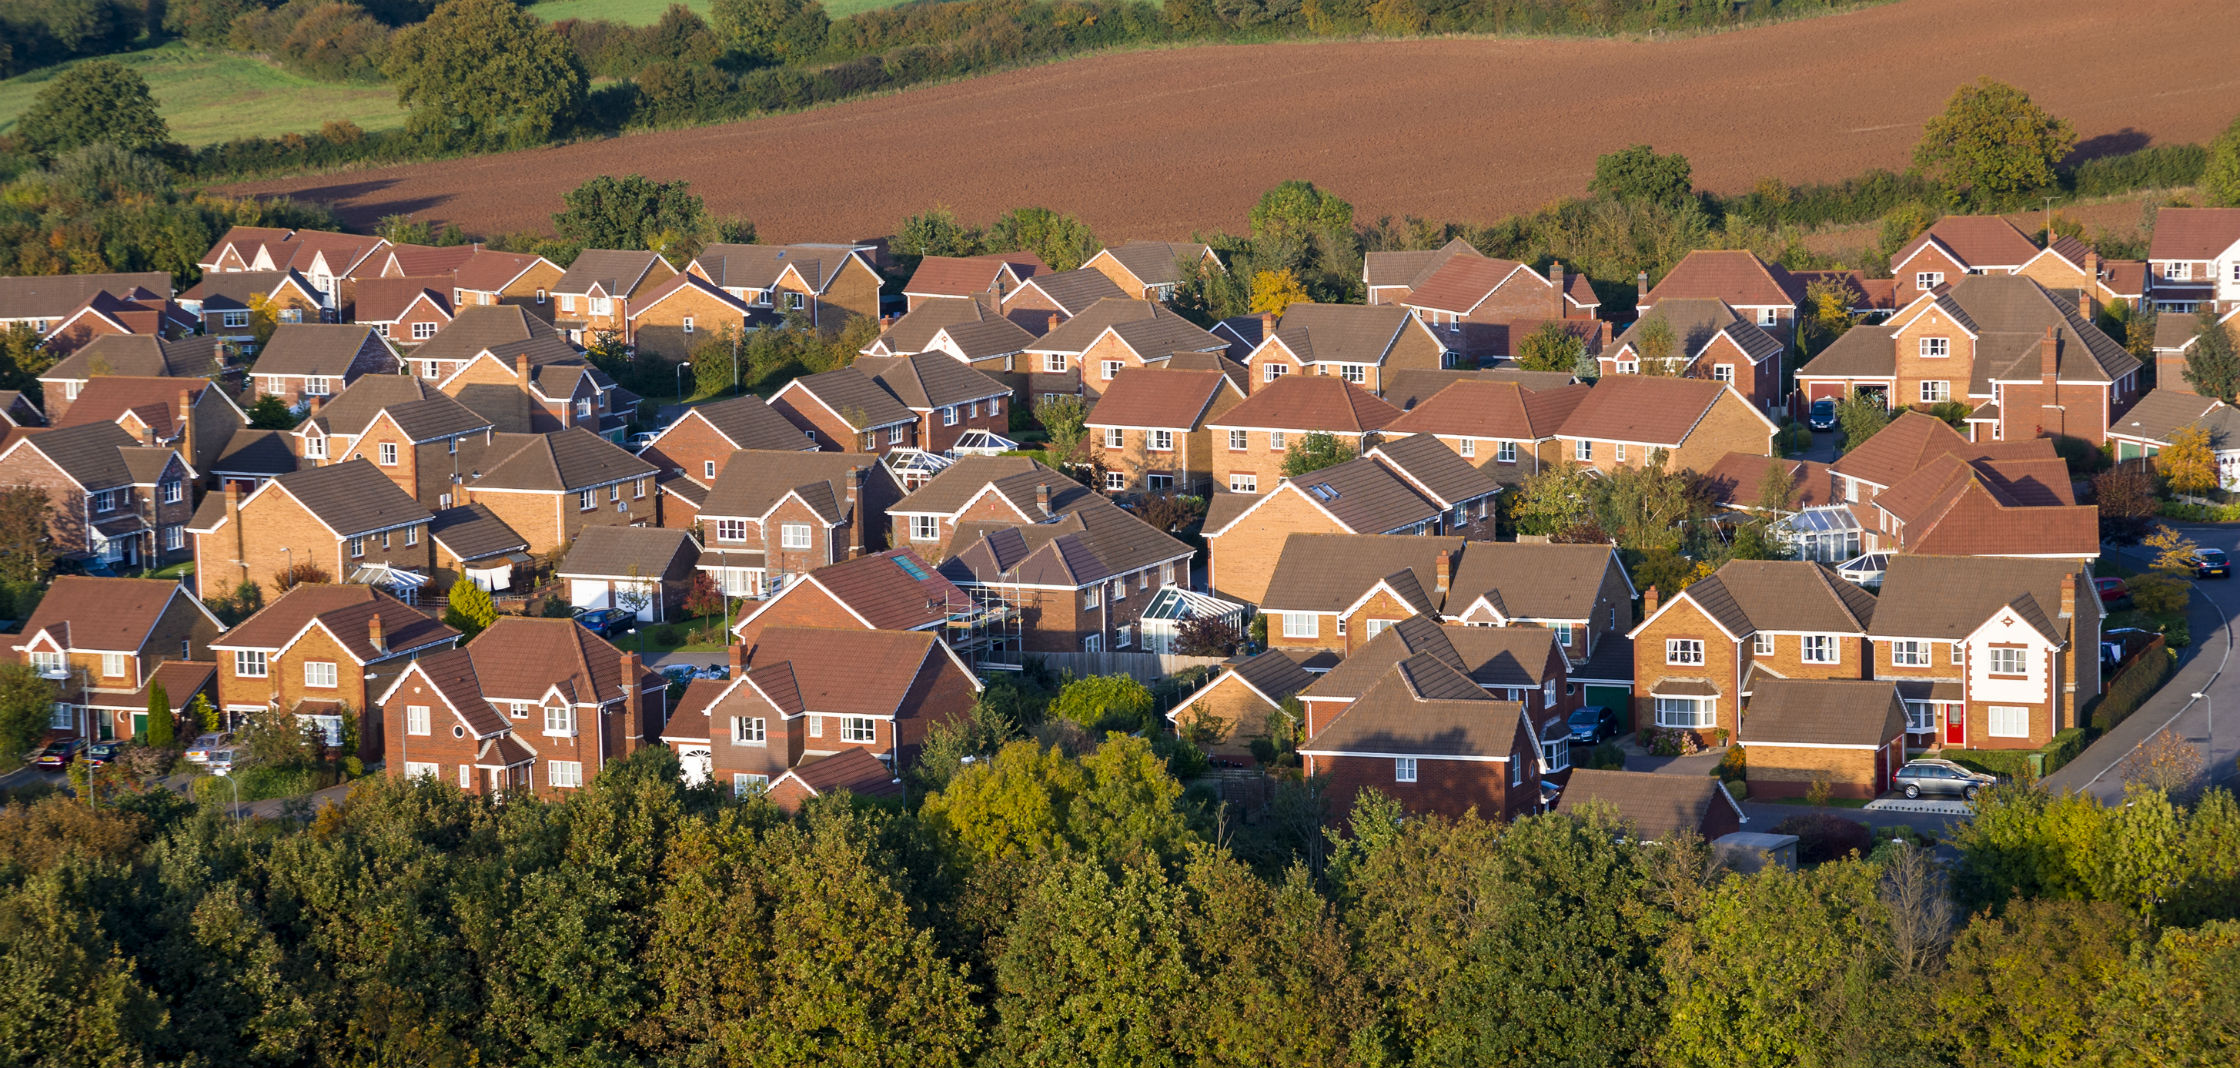 How housing providers can improve efficiency and save costs